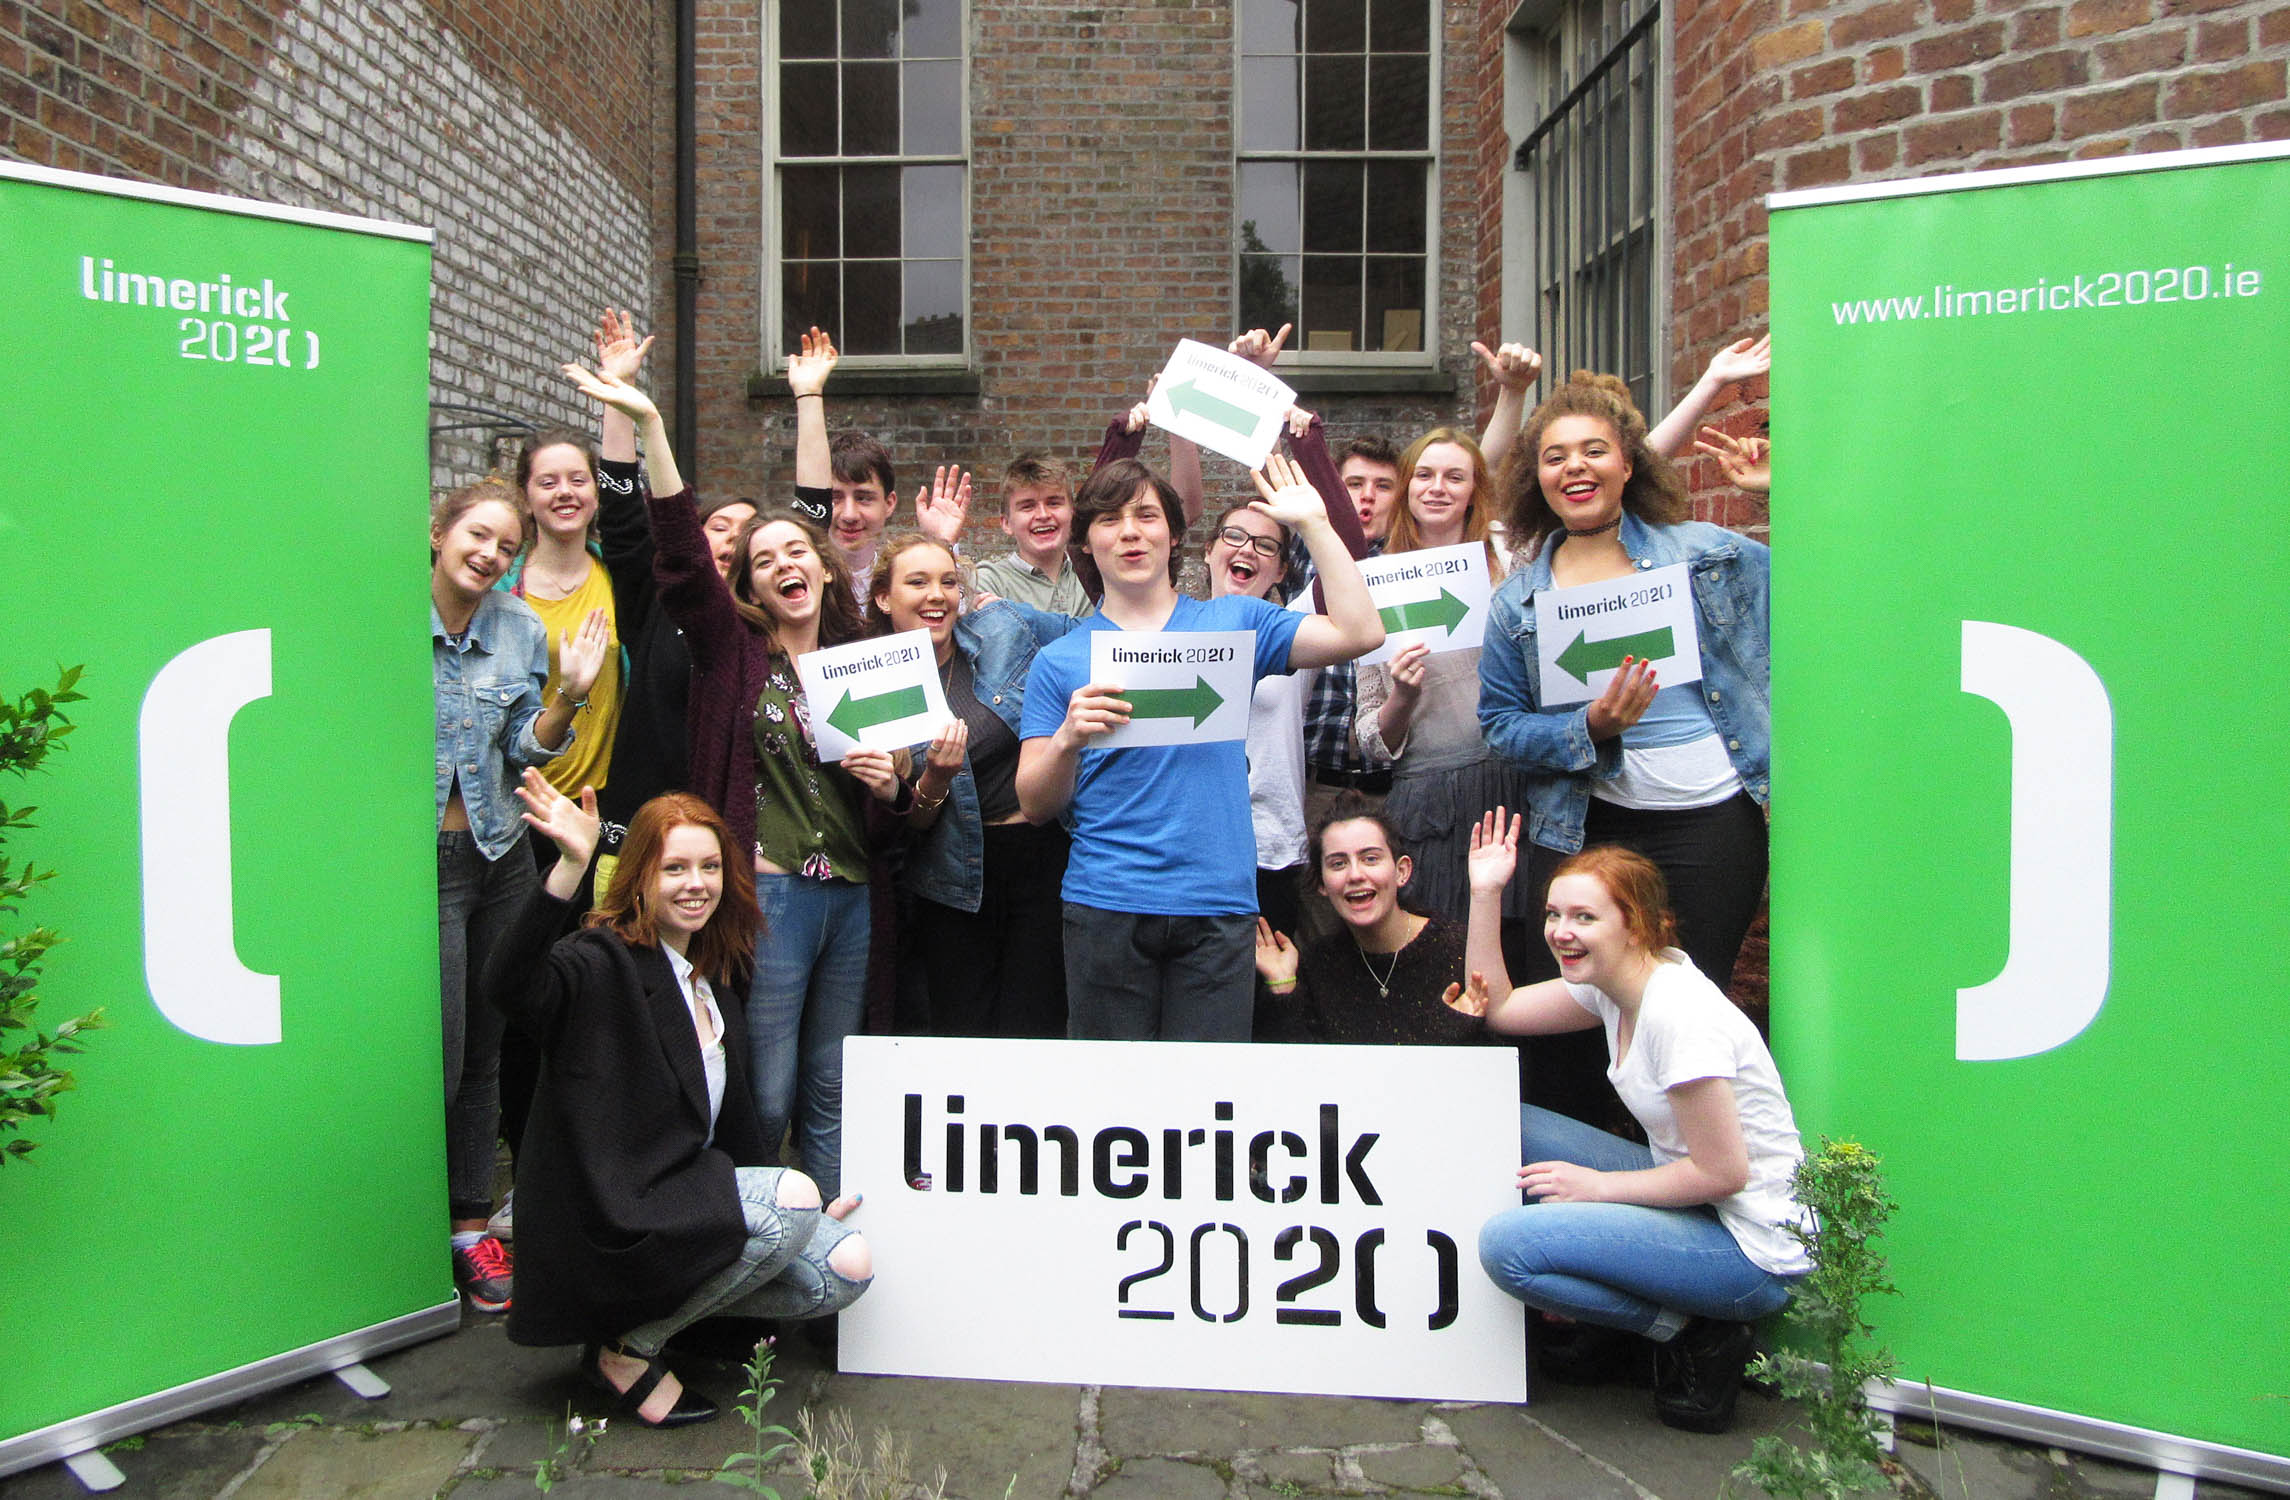 Limerick Youth Theatre stages The Trial